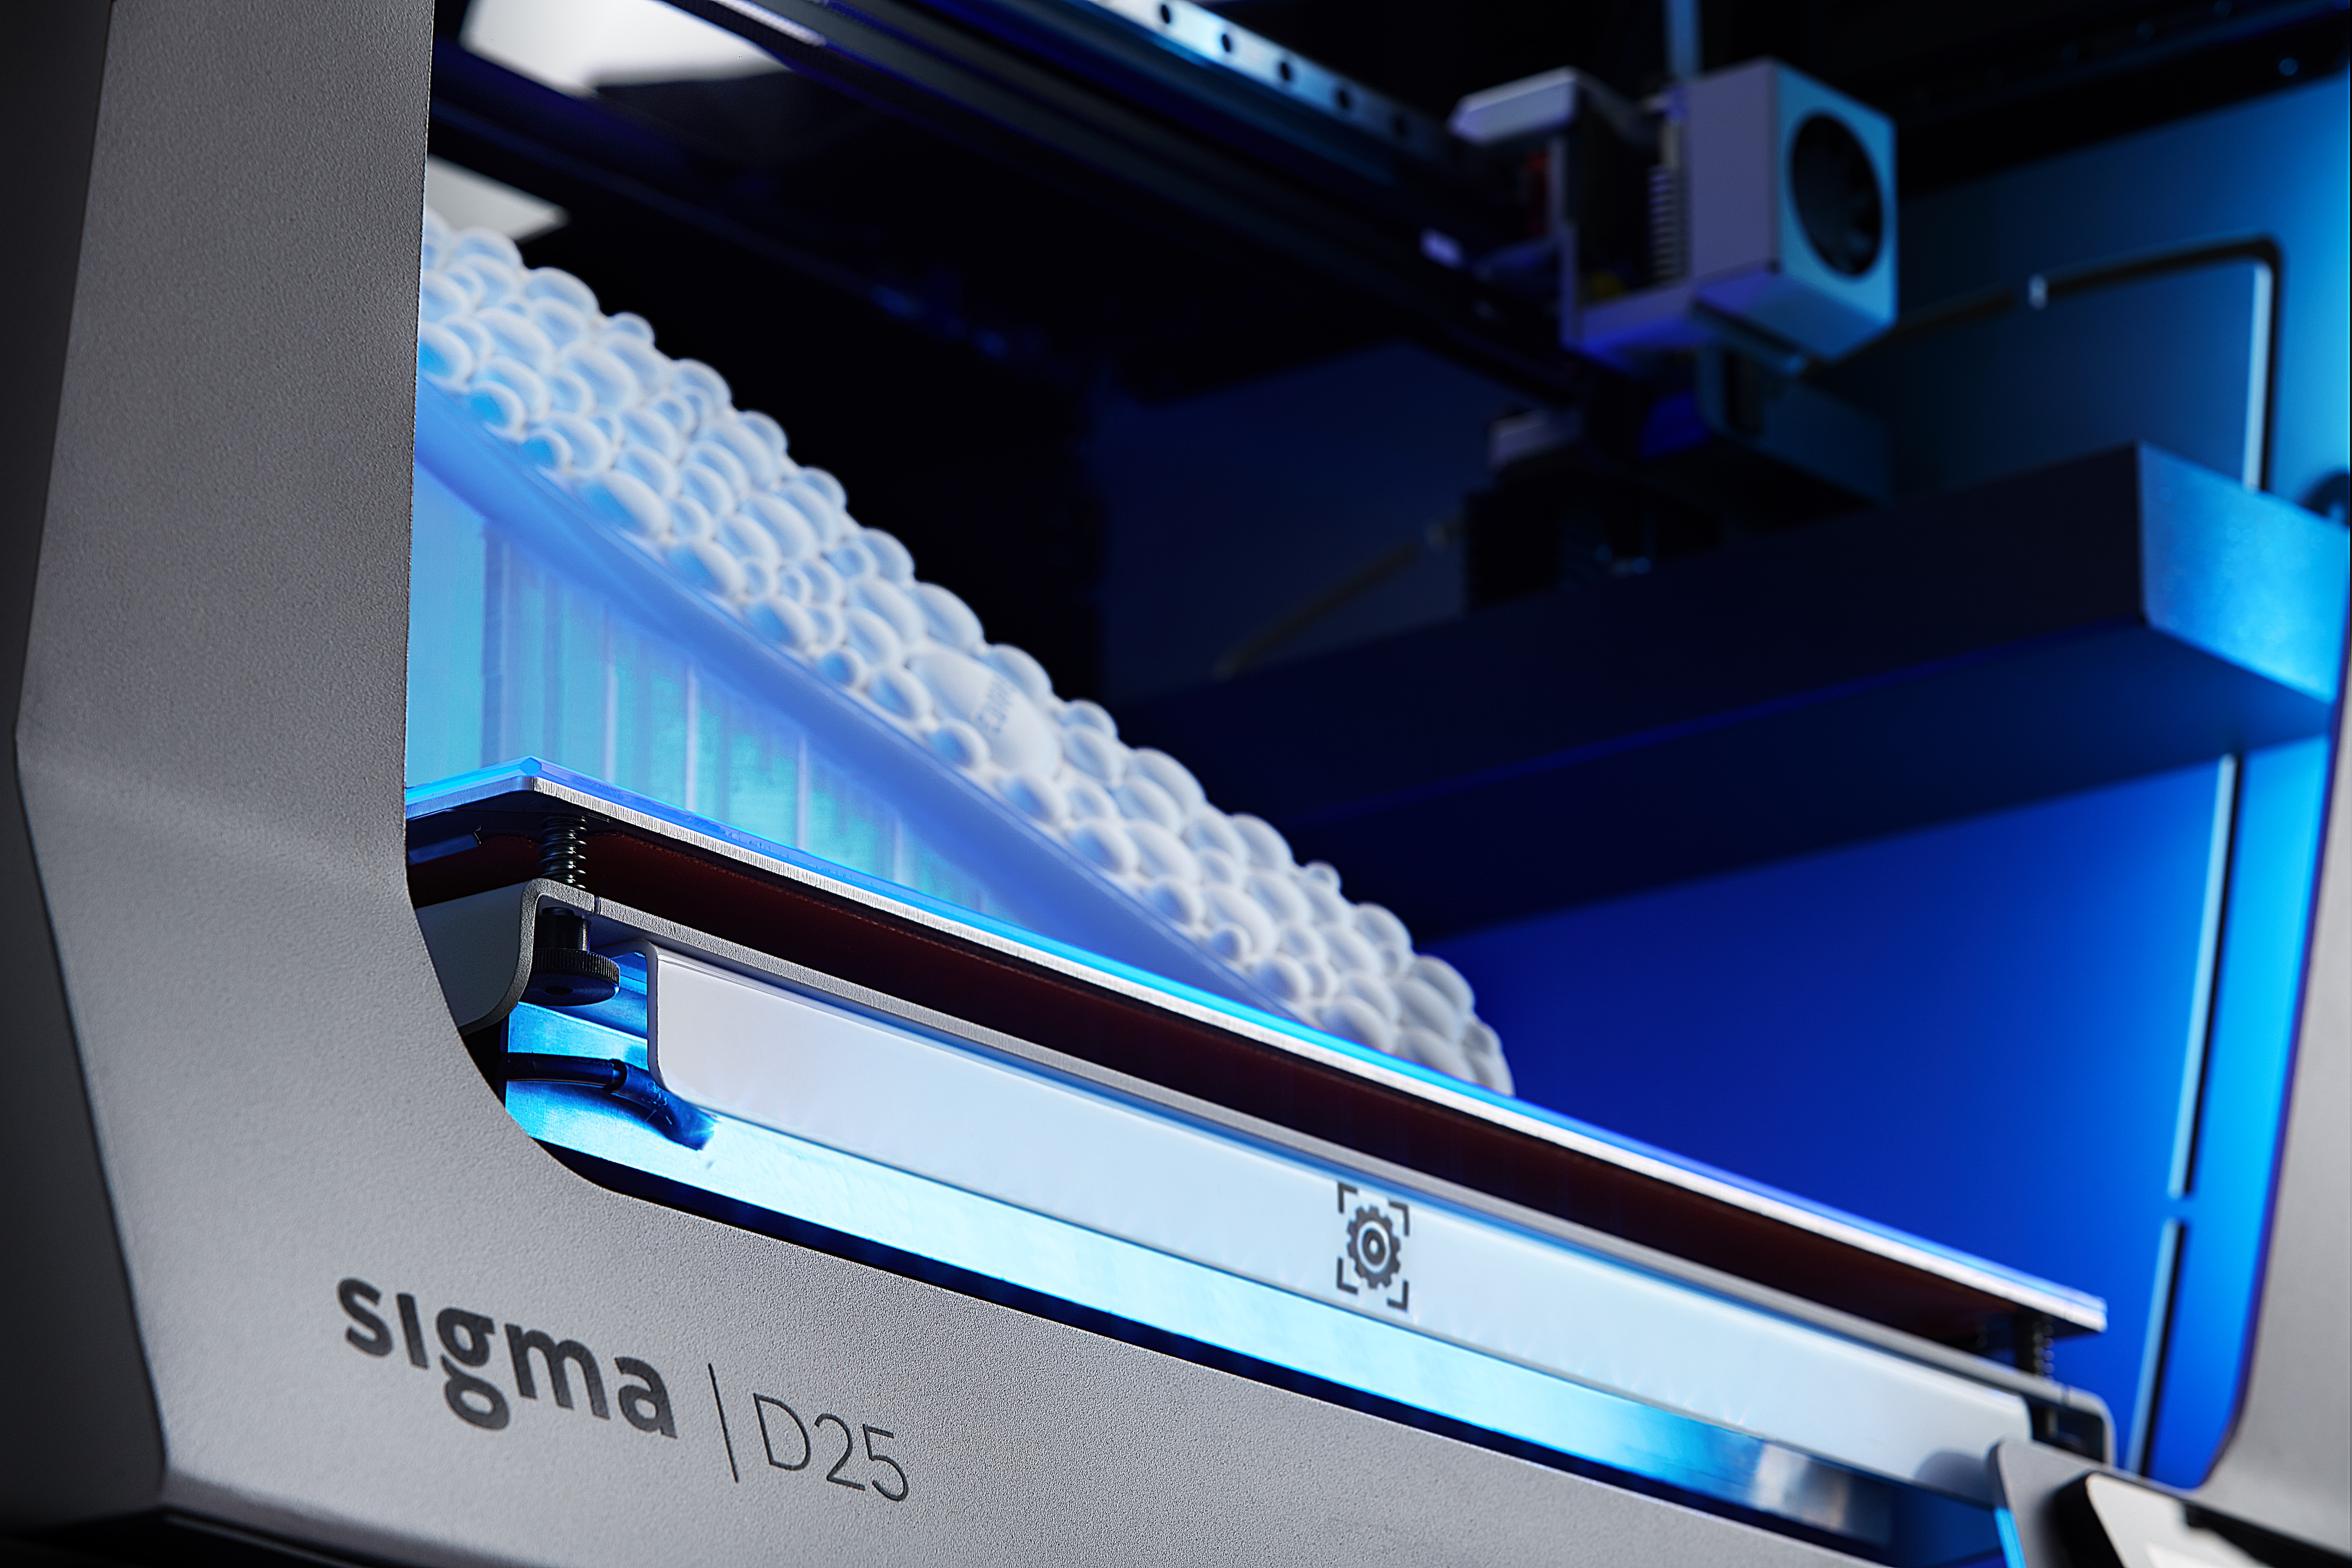 BCN3D_Sigma_D25_3D_Printer_IDEX_dual_extrusion_water_soluble_PVA_supports_HD